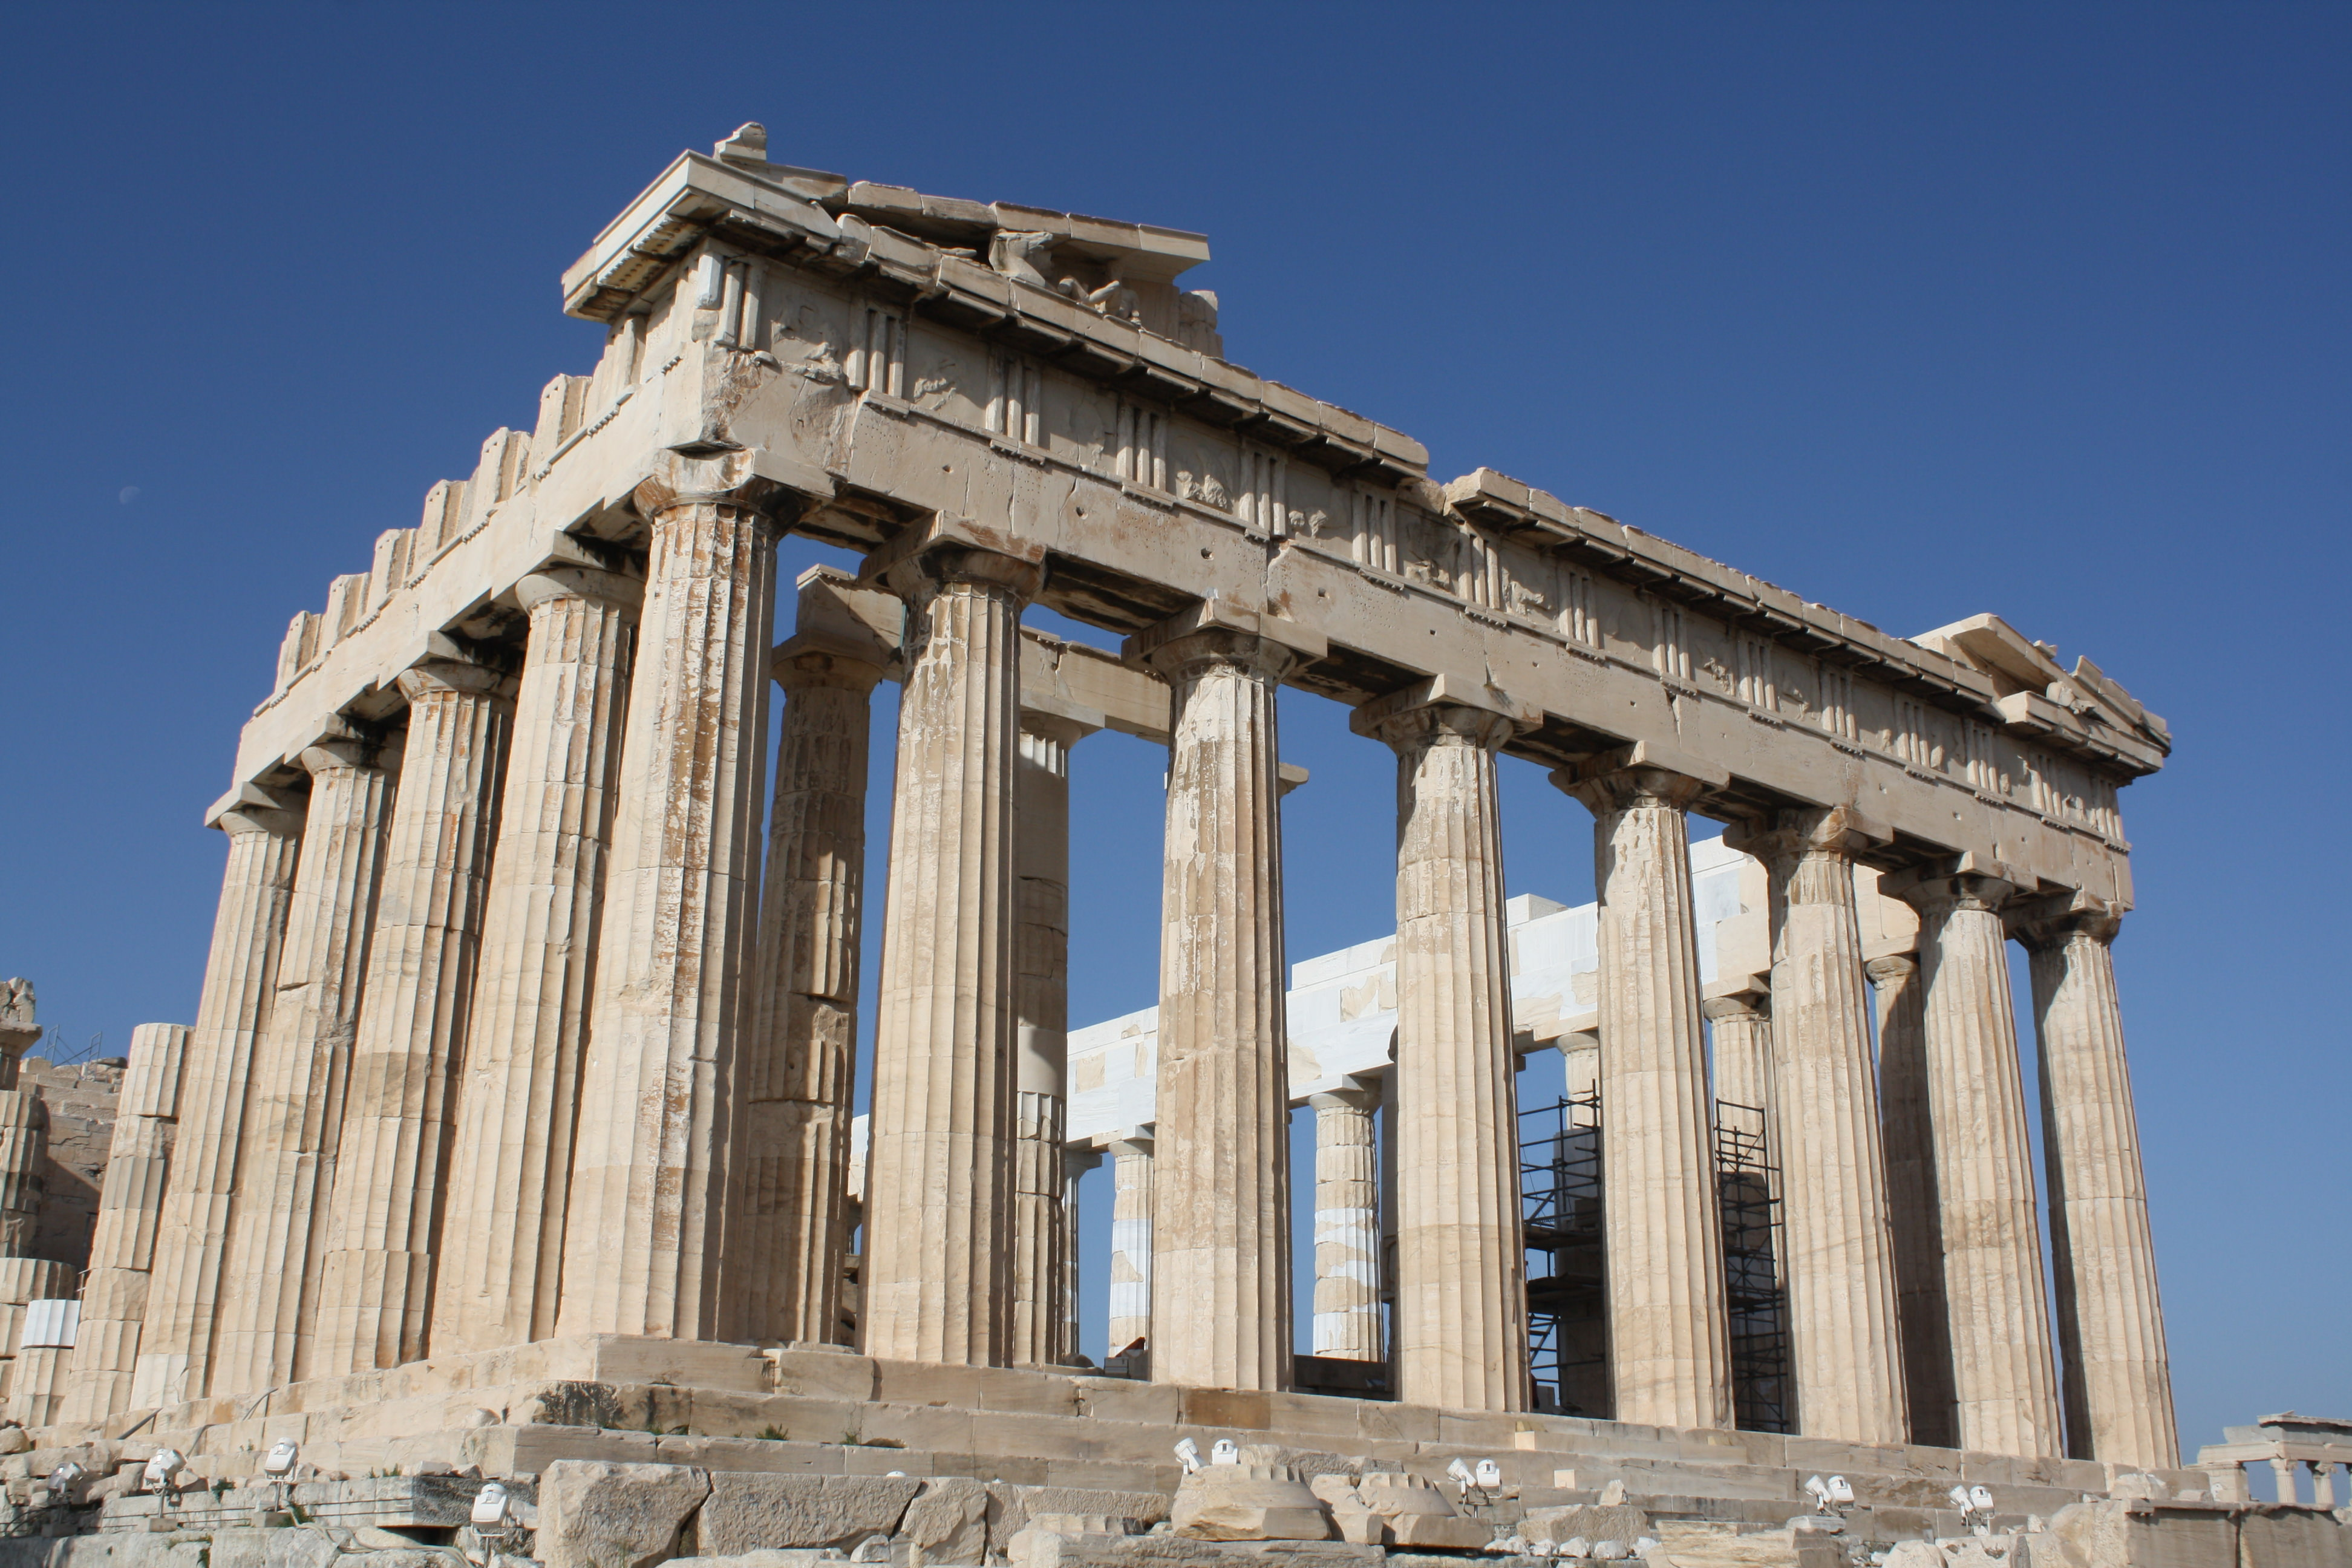 Was greek democracy democratic? explain why or why not?